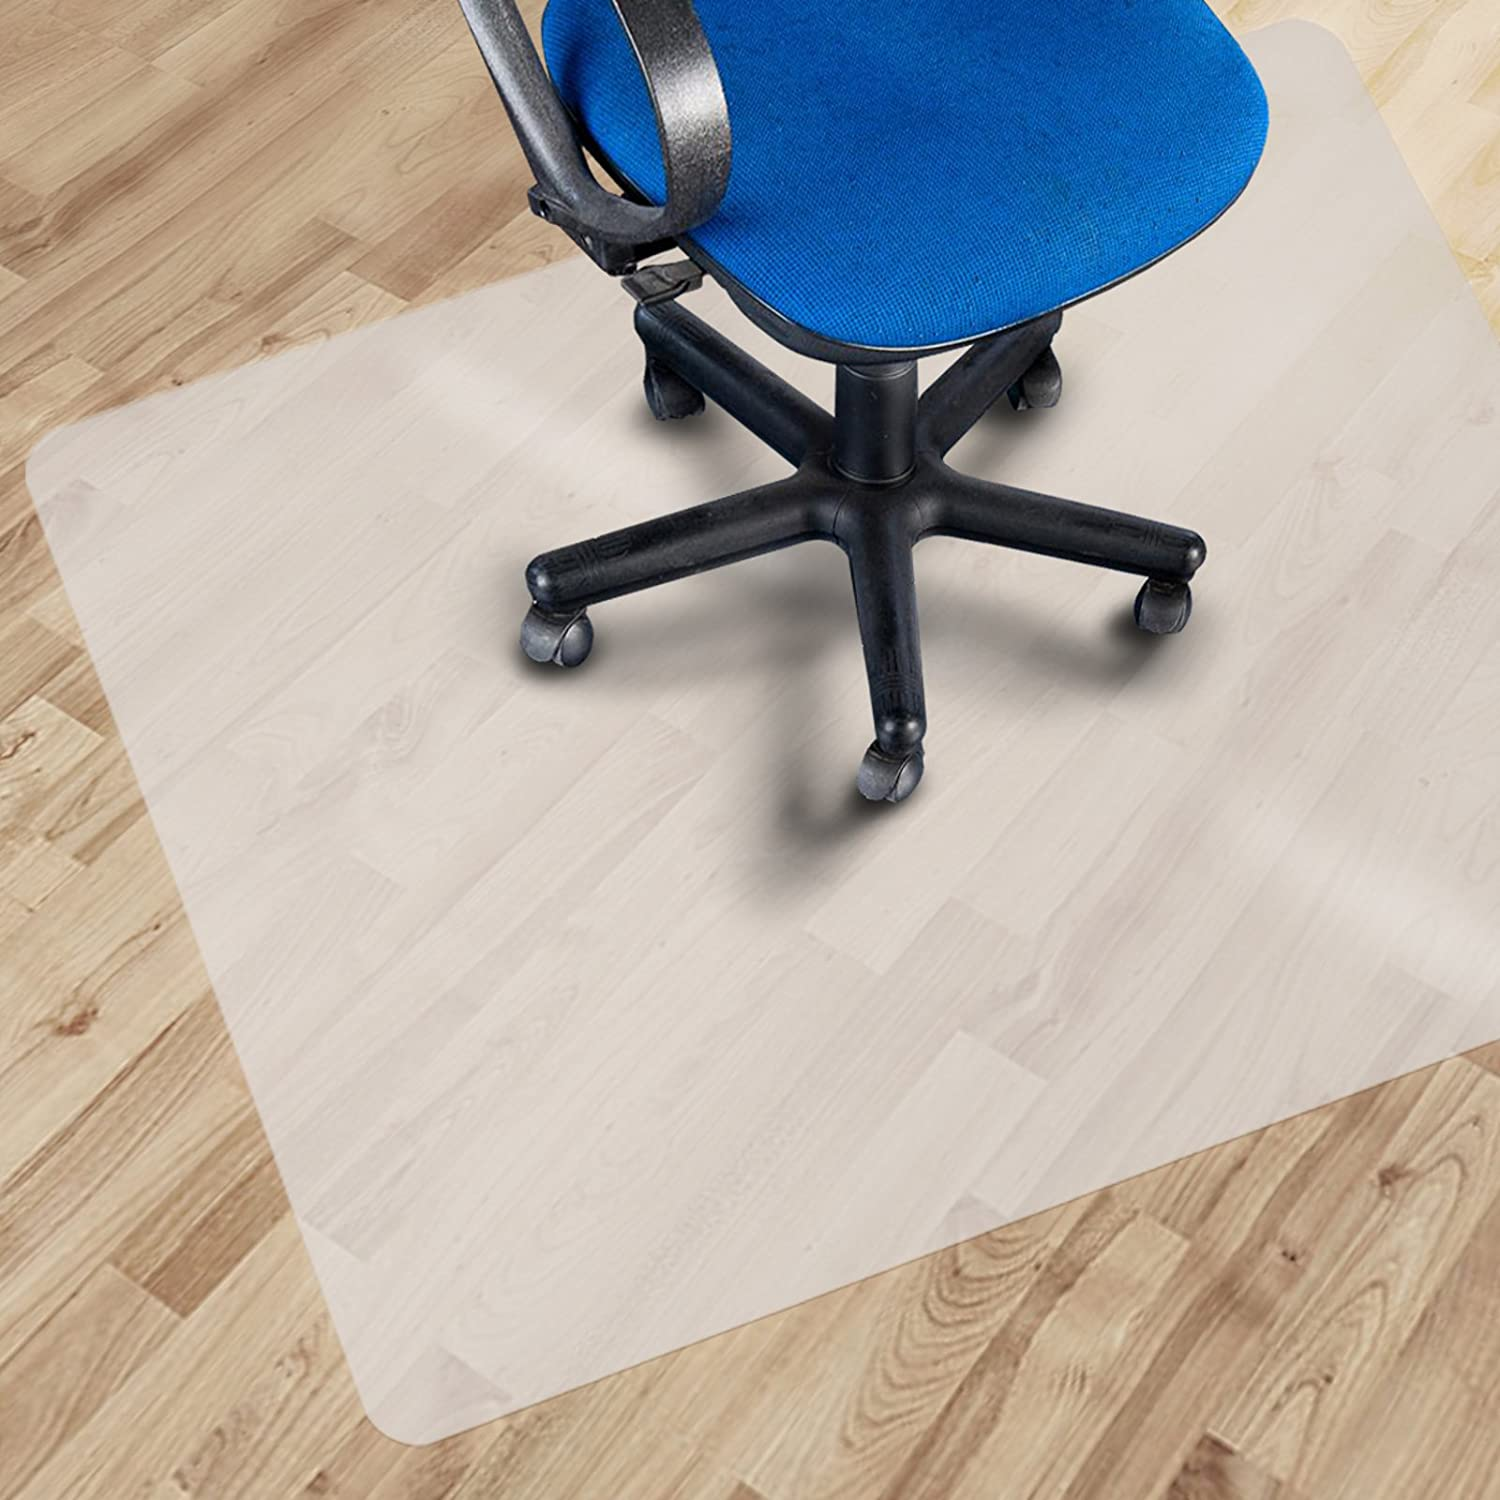 home chairs chair for carpet protector plastic collections mats wood modern office also on clear ideas foldable remarkable floor dr mat awesome enchanting with extraordinary pad depot desk